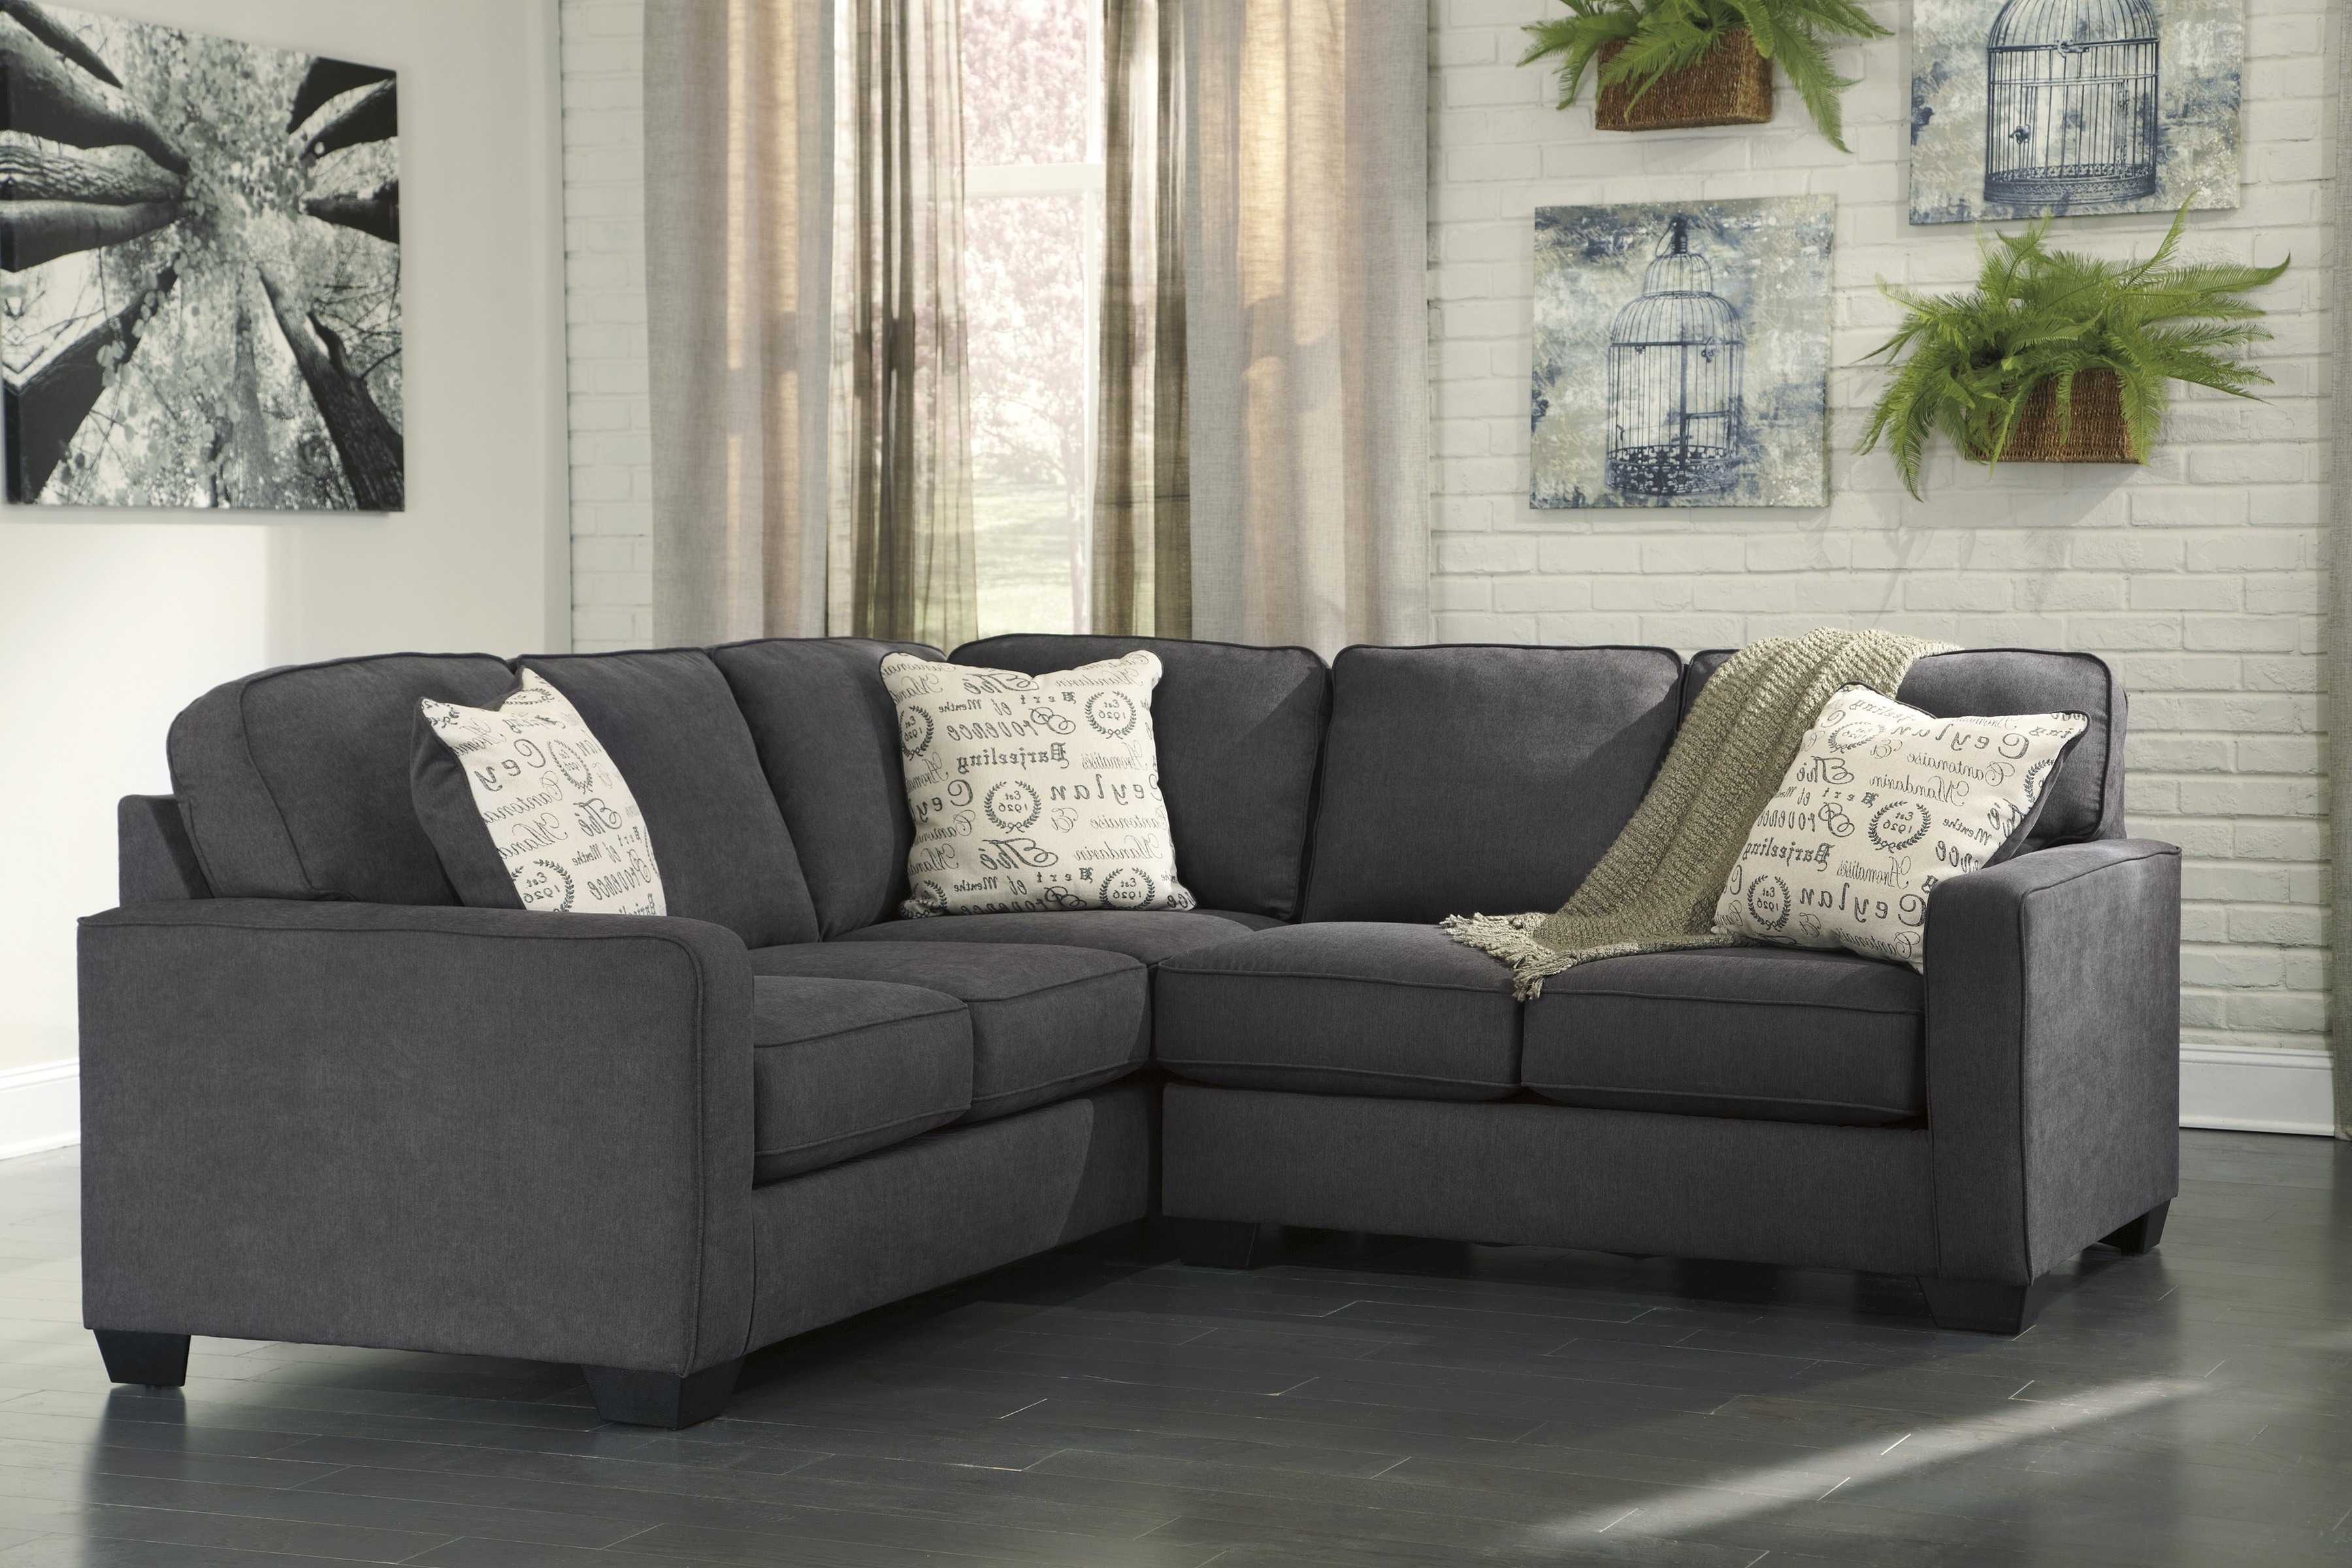 Alenya Charcoal Piece Sectional Sofa For Furnitureusa Raf Love Tures Pertaining To Aspen 2 Piece Sectionals With Raf Chaise (View 10 of 25)